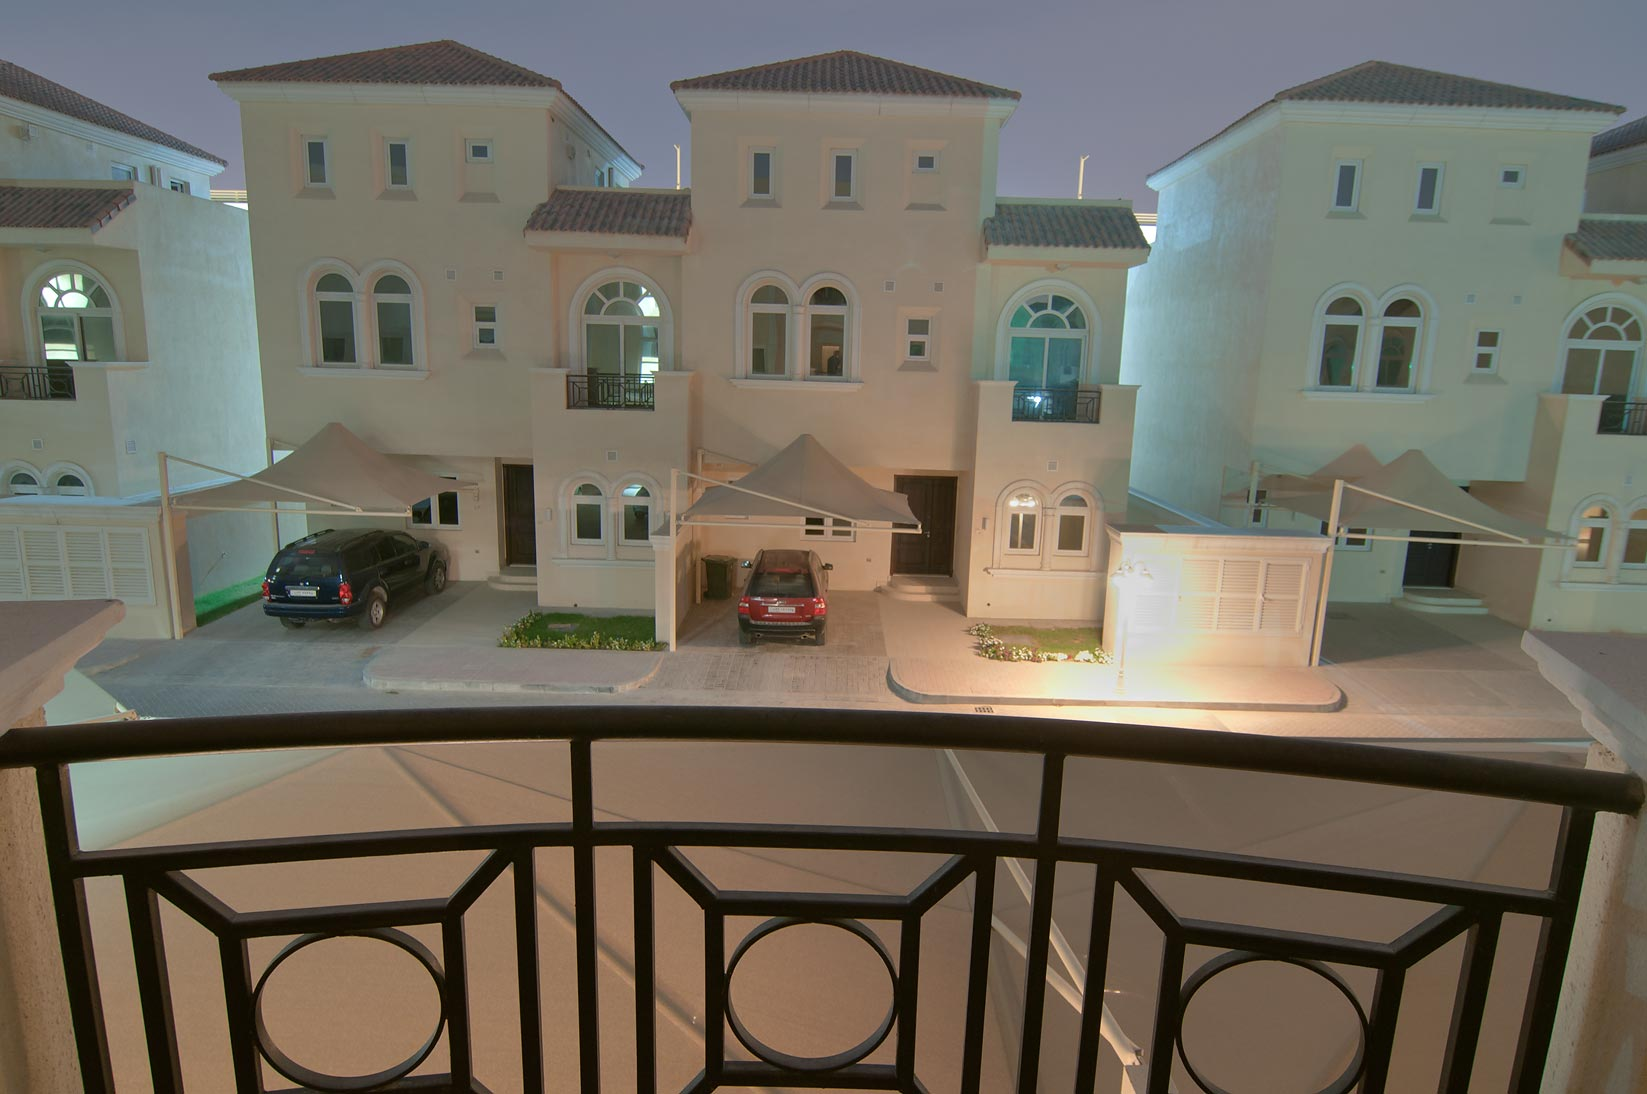 View from a balcony of Apartment 7A5 of Dar Al Salam Compound. Doha, Qatar